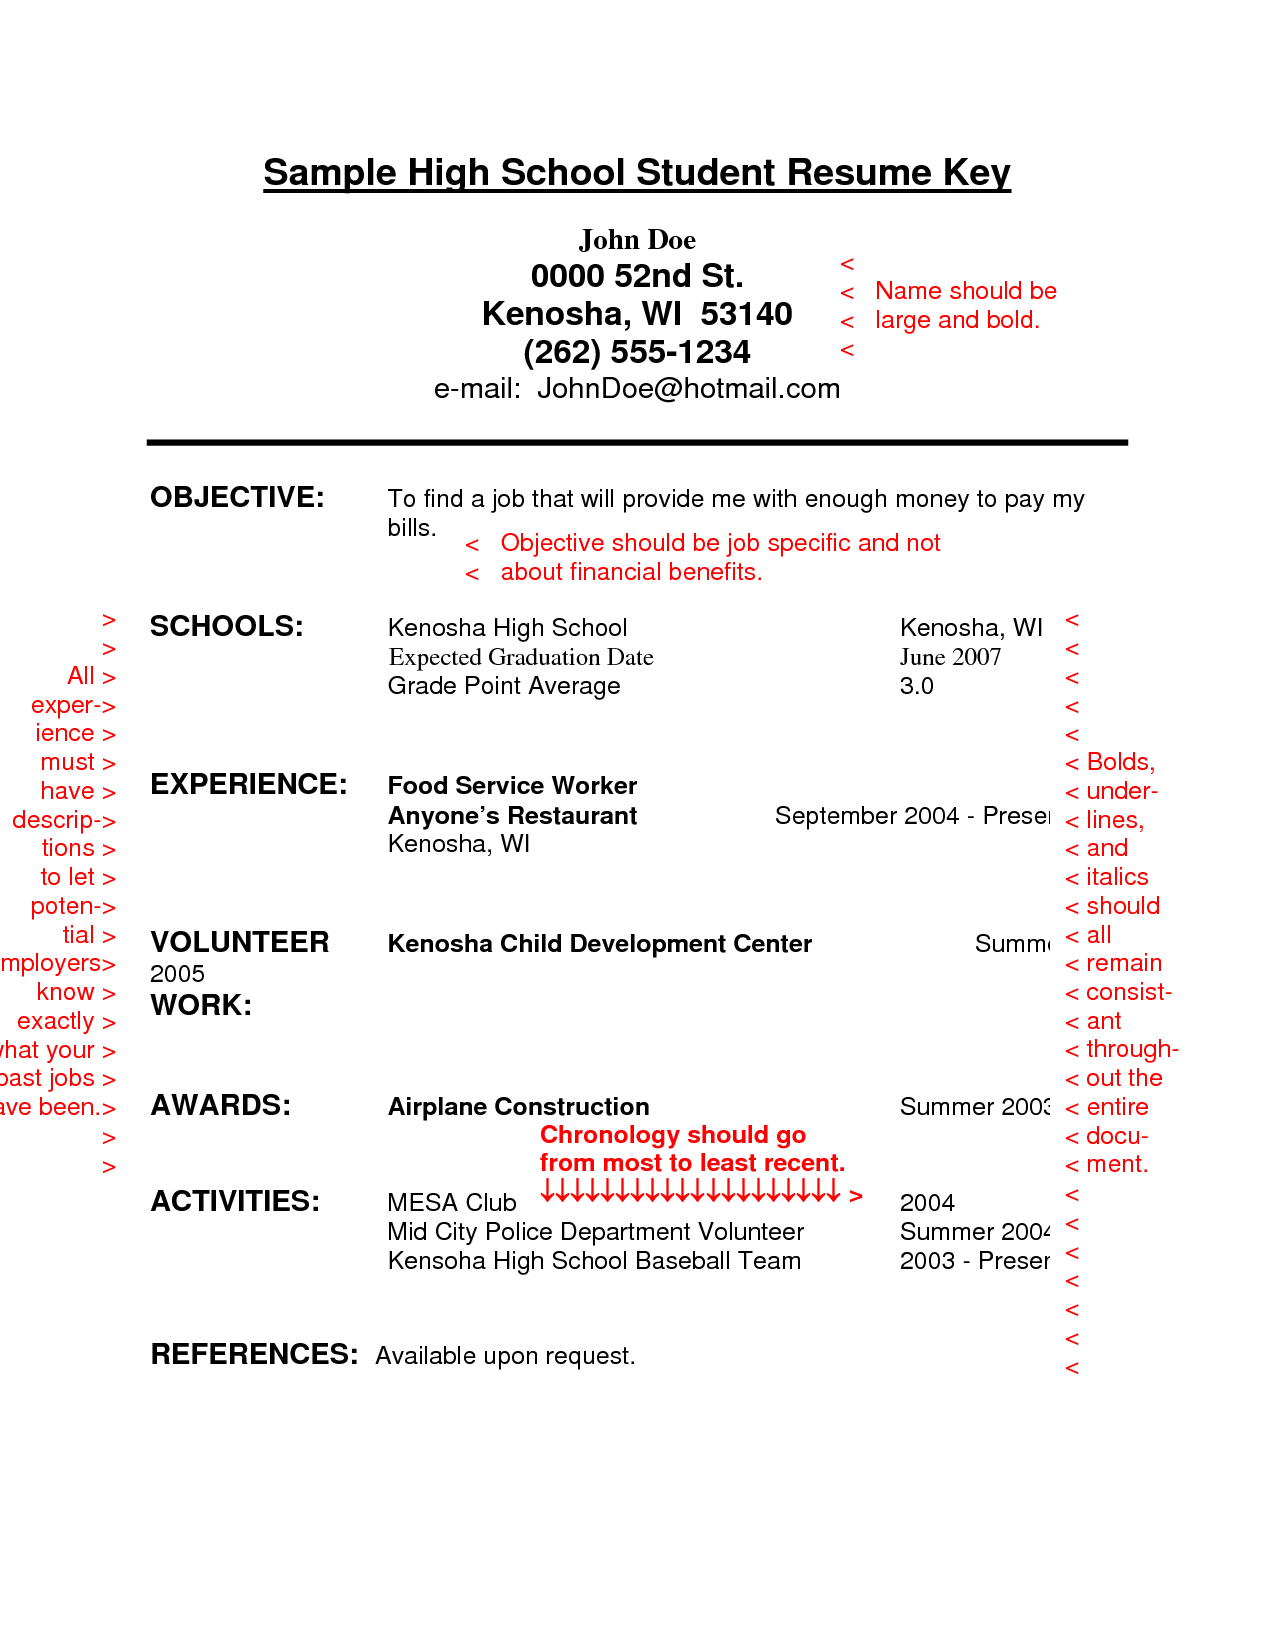 How To Write A Resume For Students With No Experience Resume Sample For High School Students With No Experience